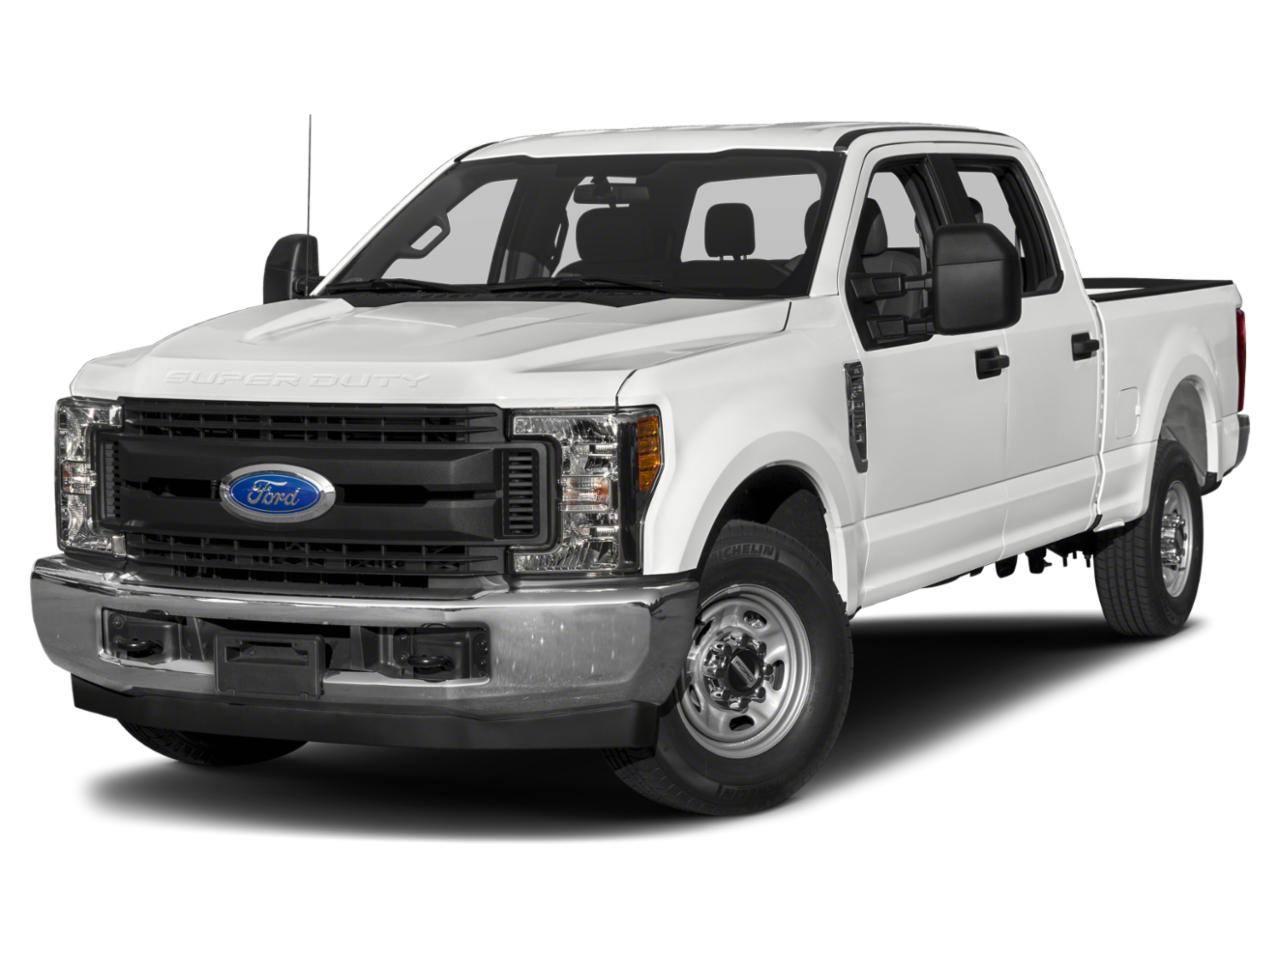 2019 Ford Super Duty F-350 SRW Vehicle Photo in Anchorage, AK 99515